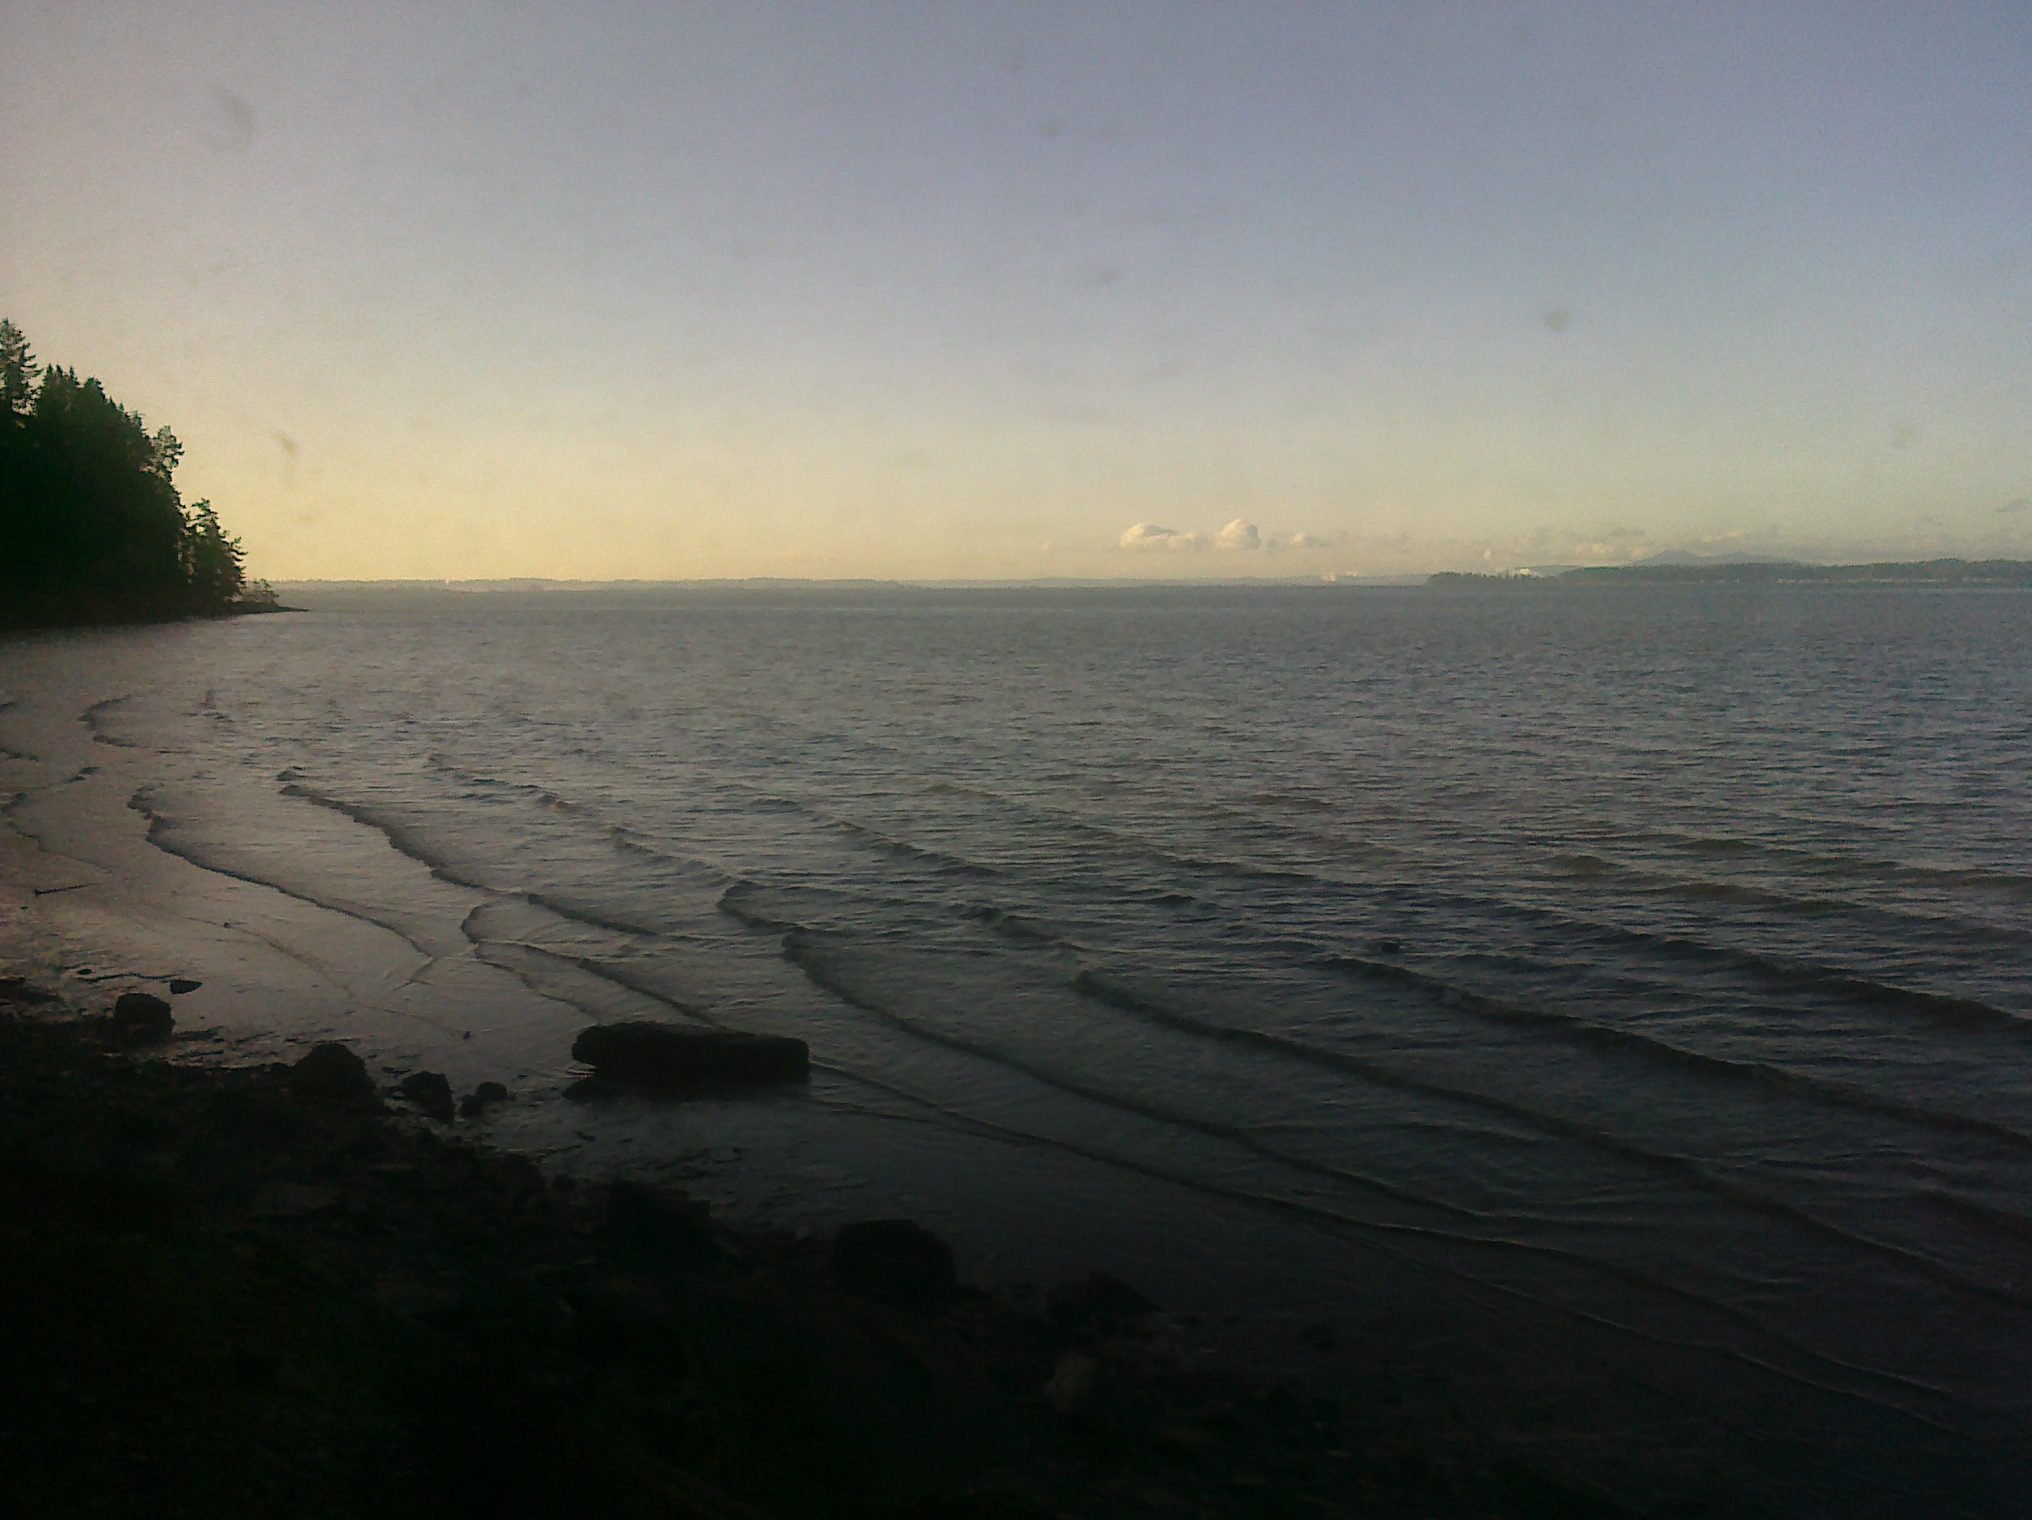 Amtrak_route_between_Vancouver_and_Seattle.jpg (2032×1520)